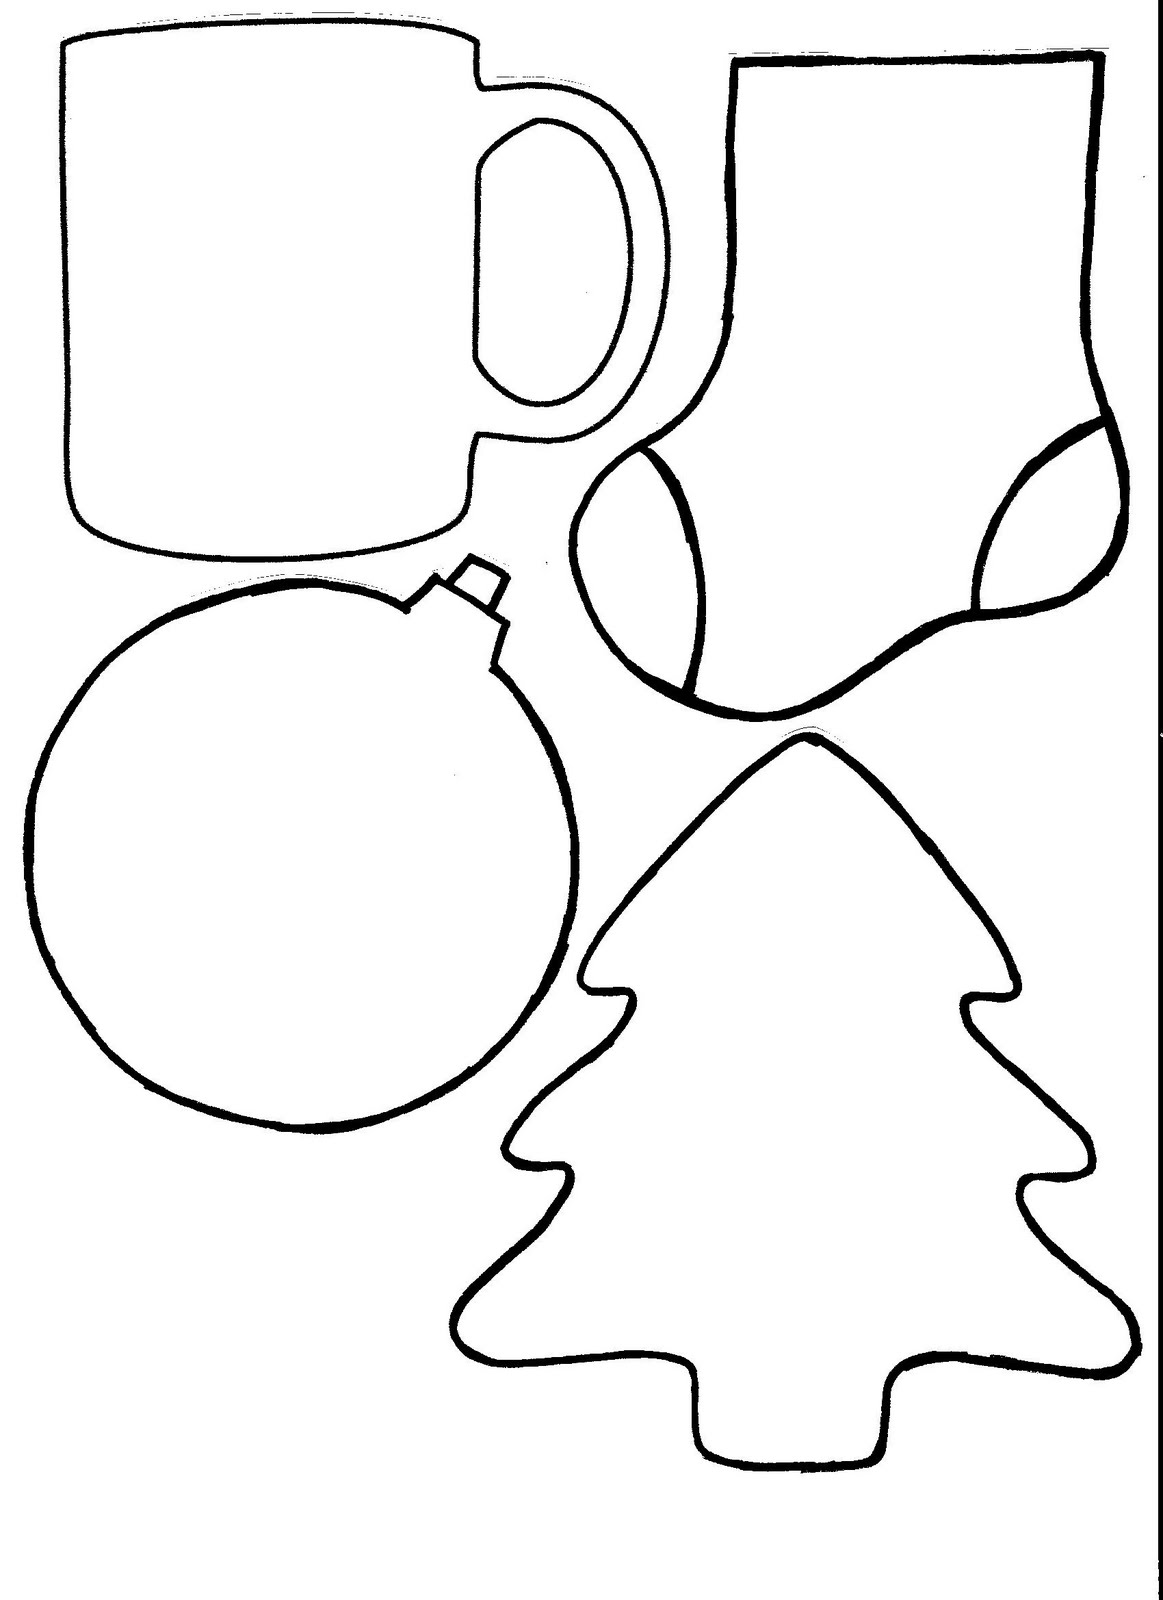 christmas shapes coloring pages - photo#16